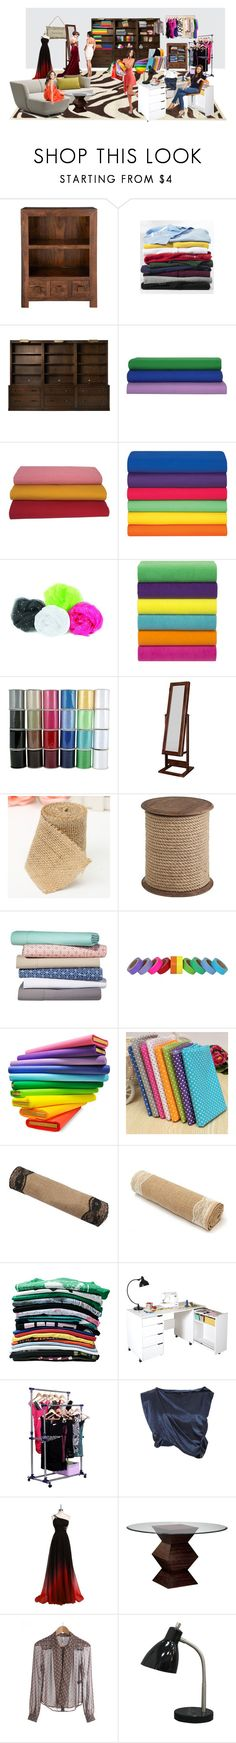 """sewing"" by sakisombor ❤ liked on Polyvore featuring interior, interiors, interior design, home, home decor, interior decorating, Arizona, Pier 1 Imports, Threshold and E L L E R Y"